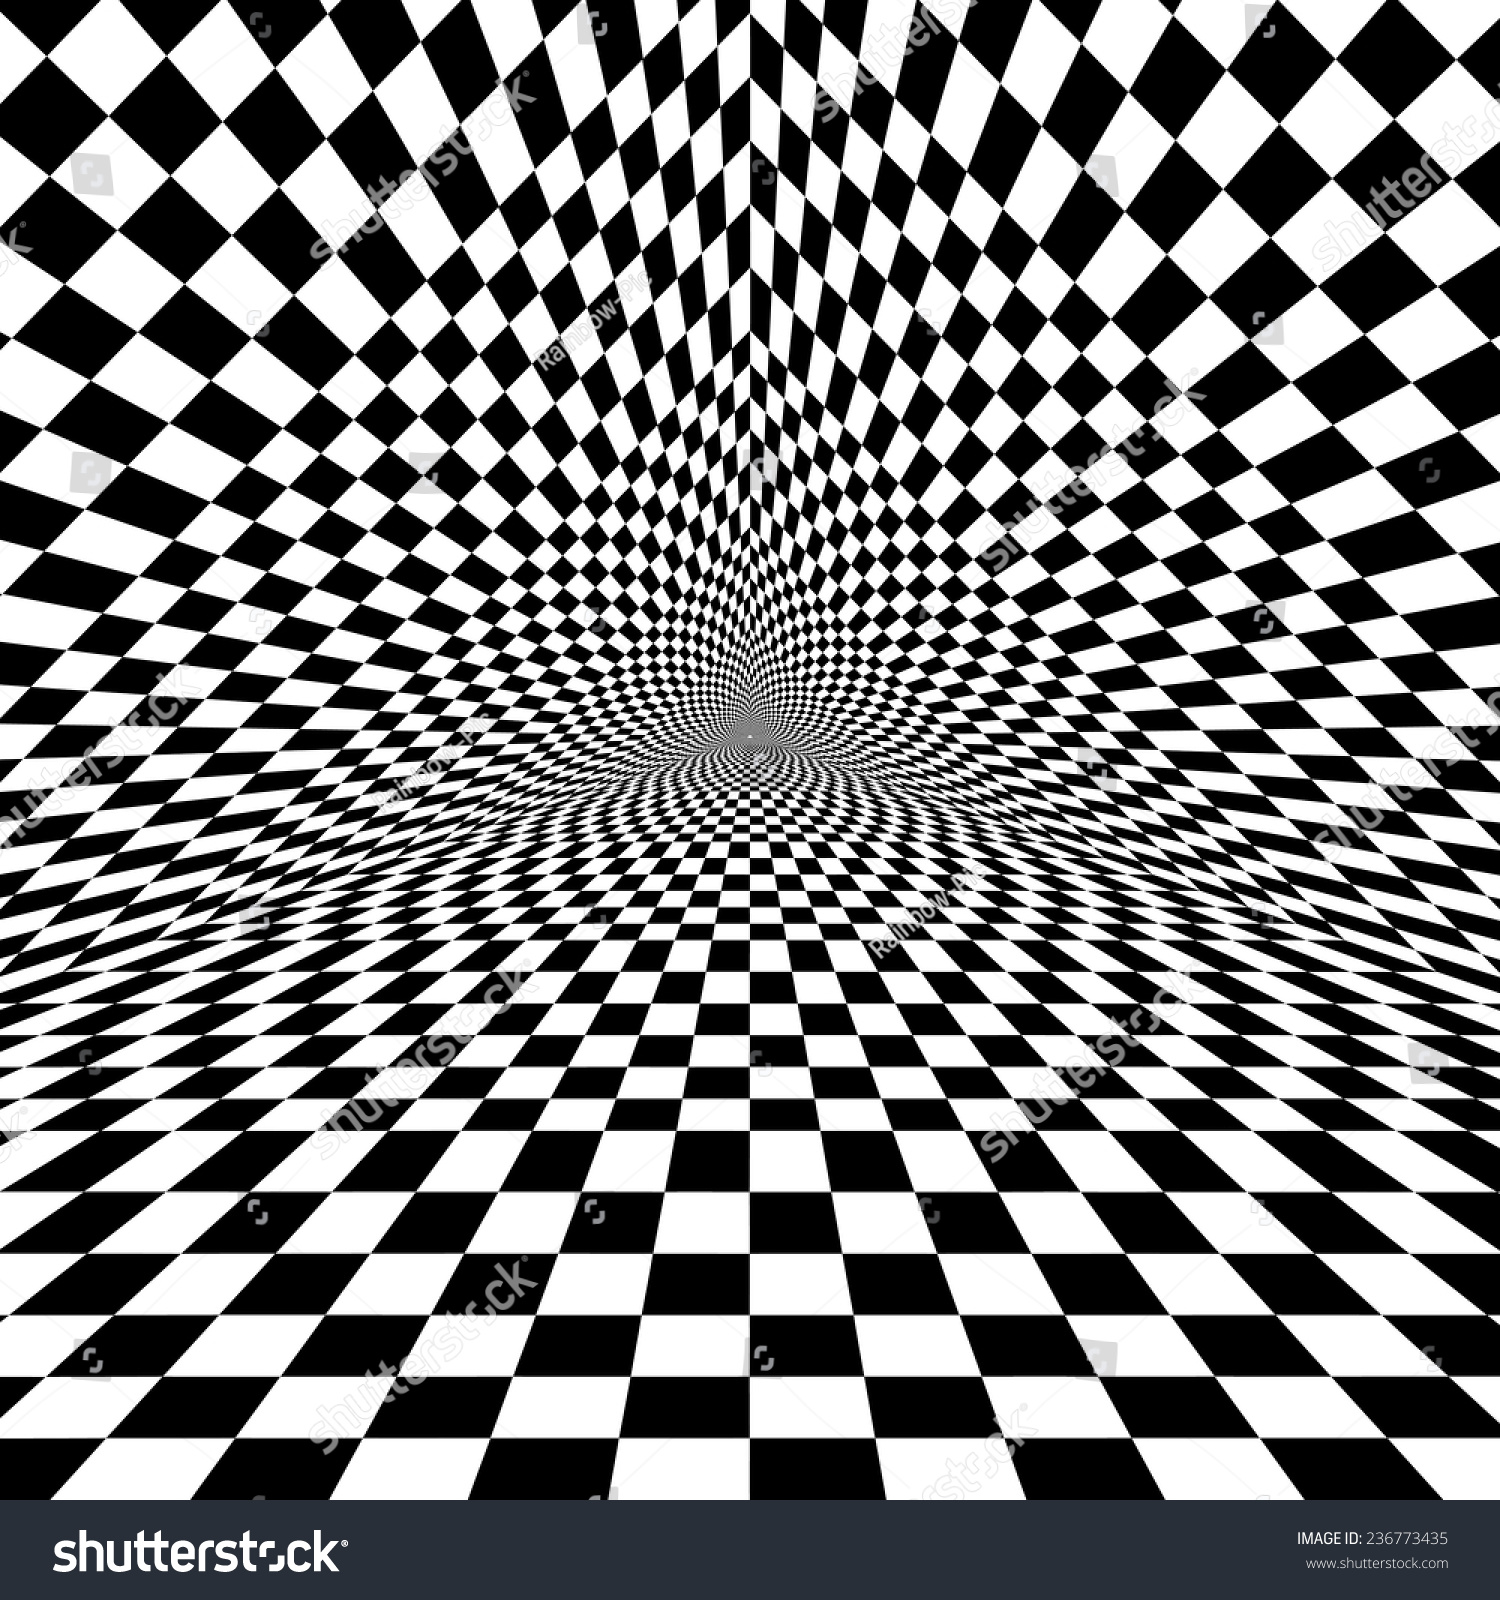 how to draw moving illusions